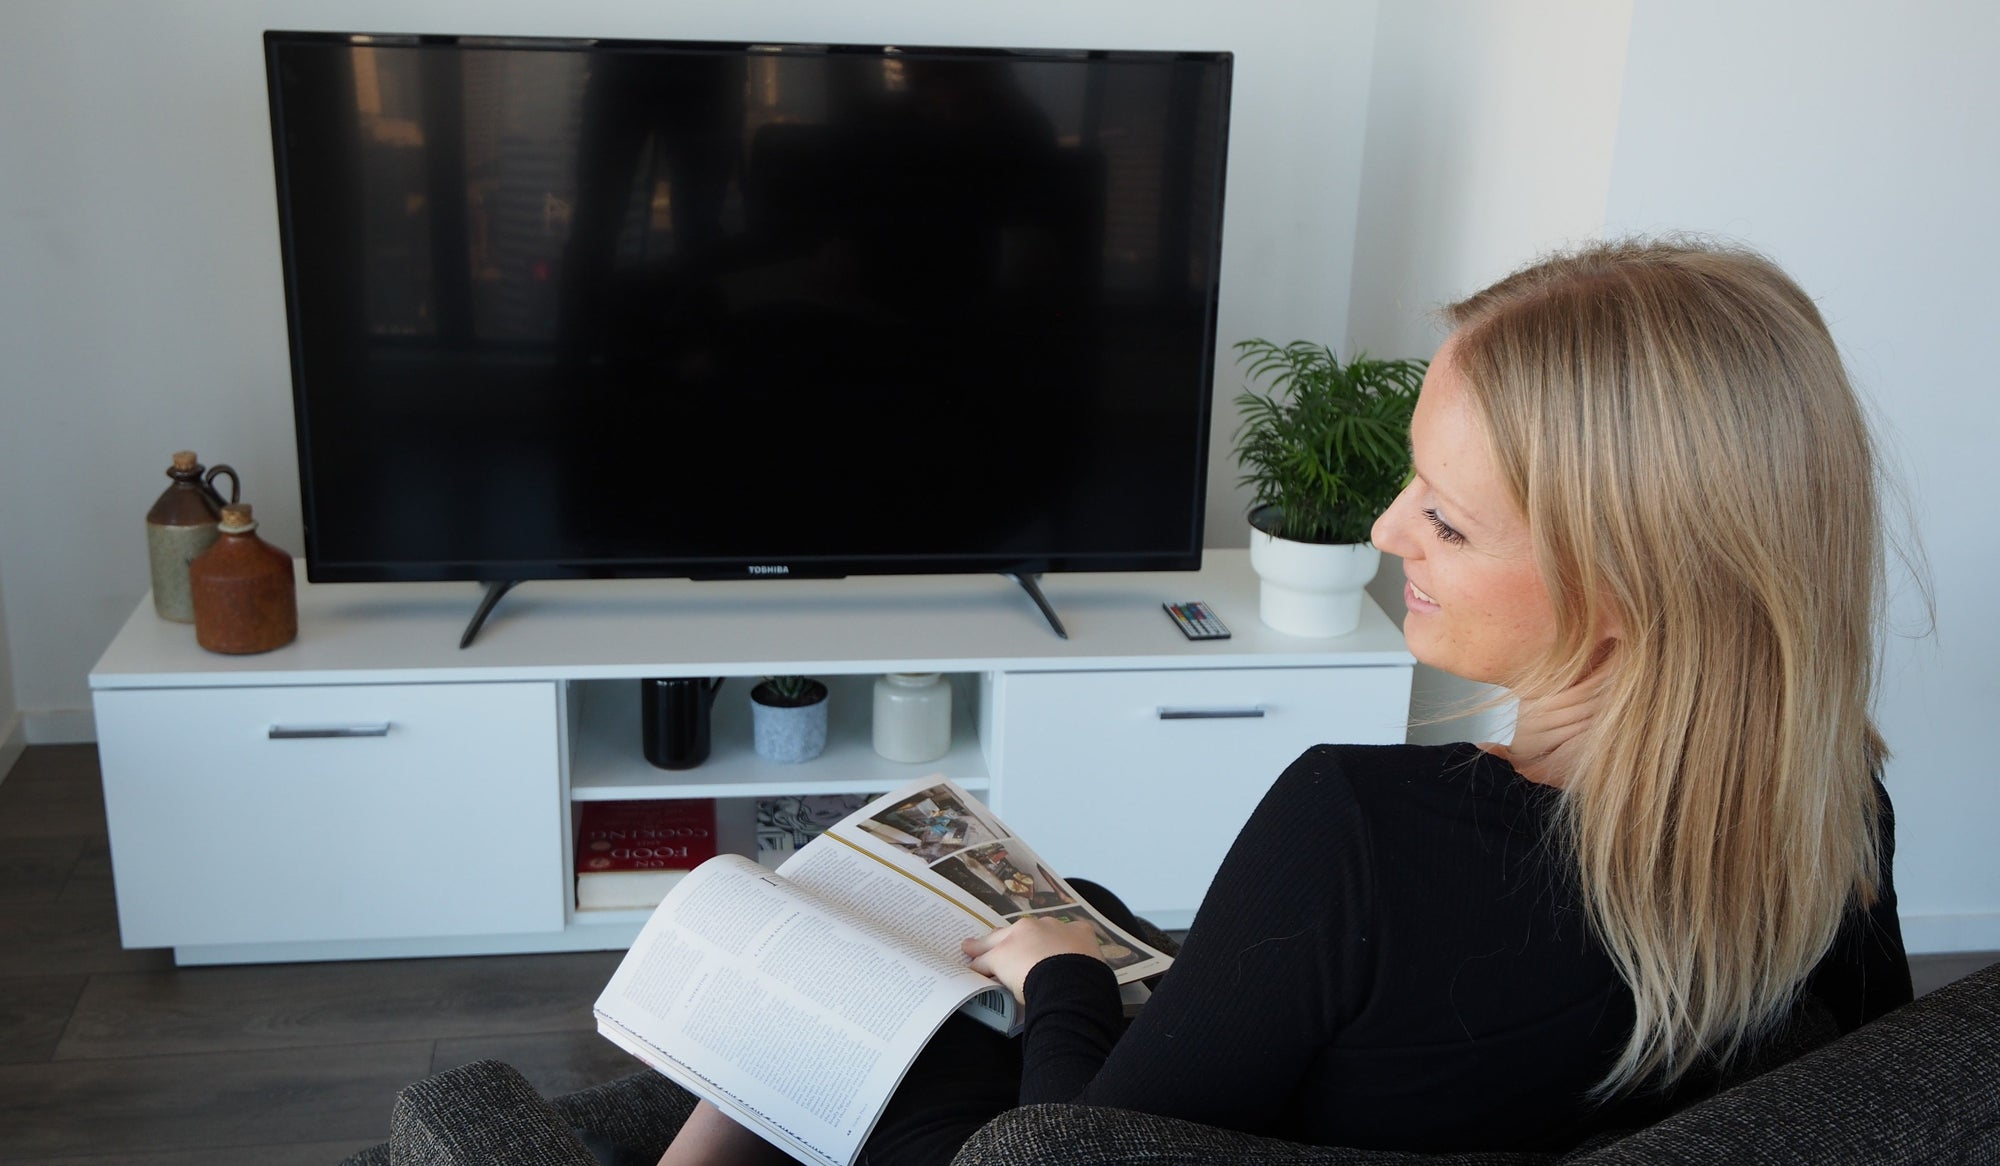 7 Tips for Finding the Right TV Stand for Your New Flat Screen